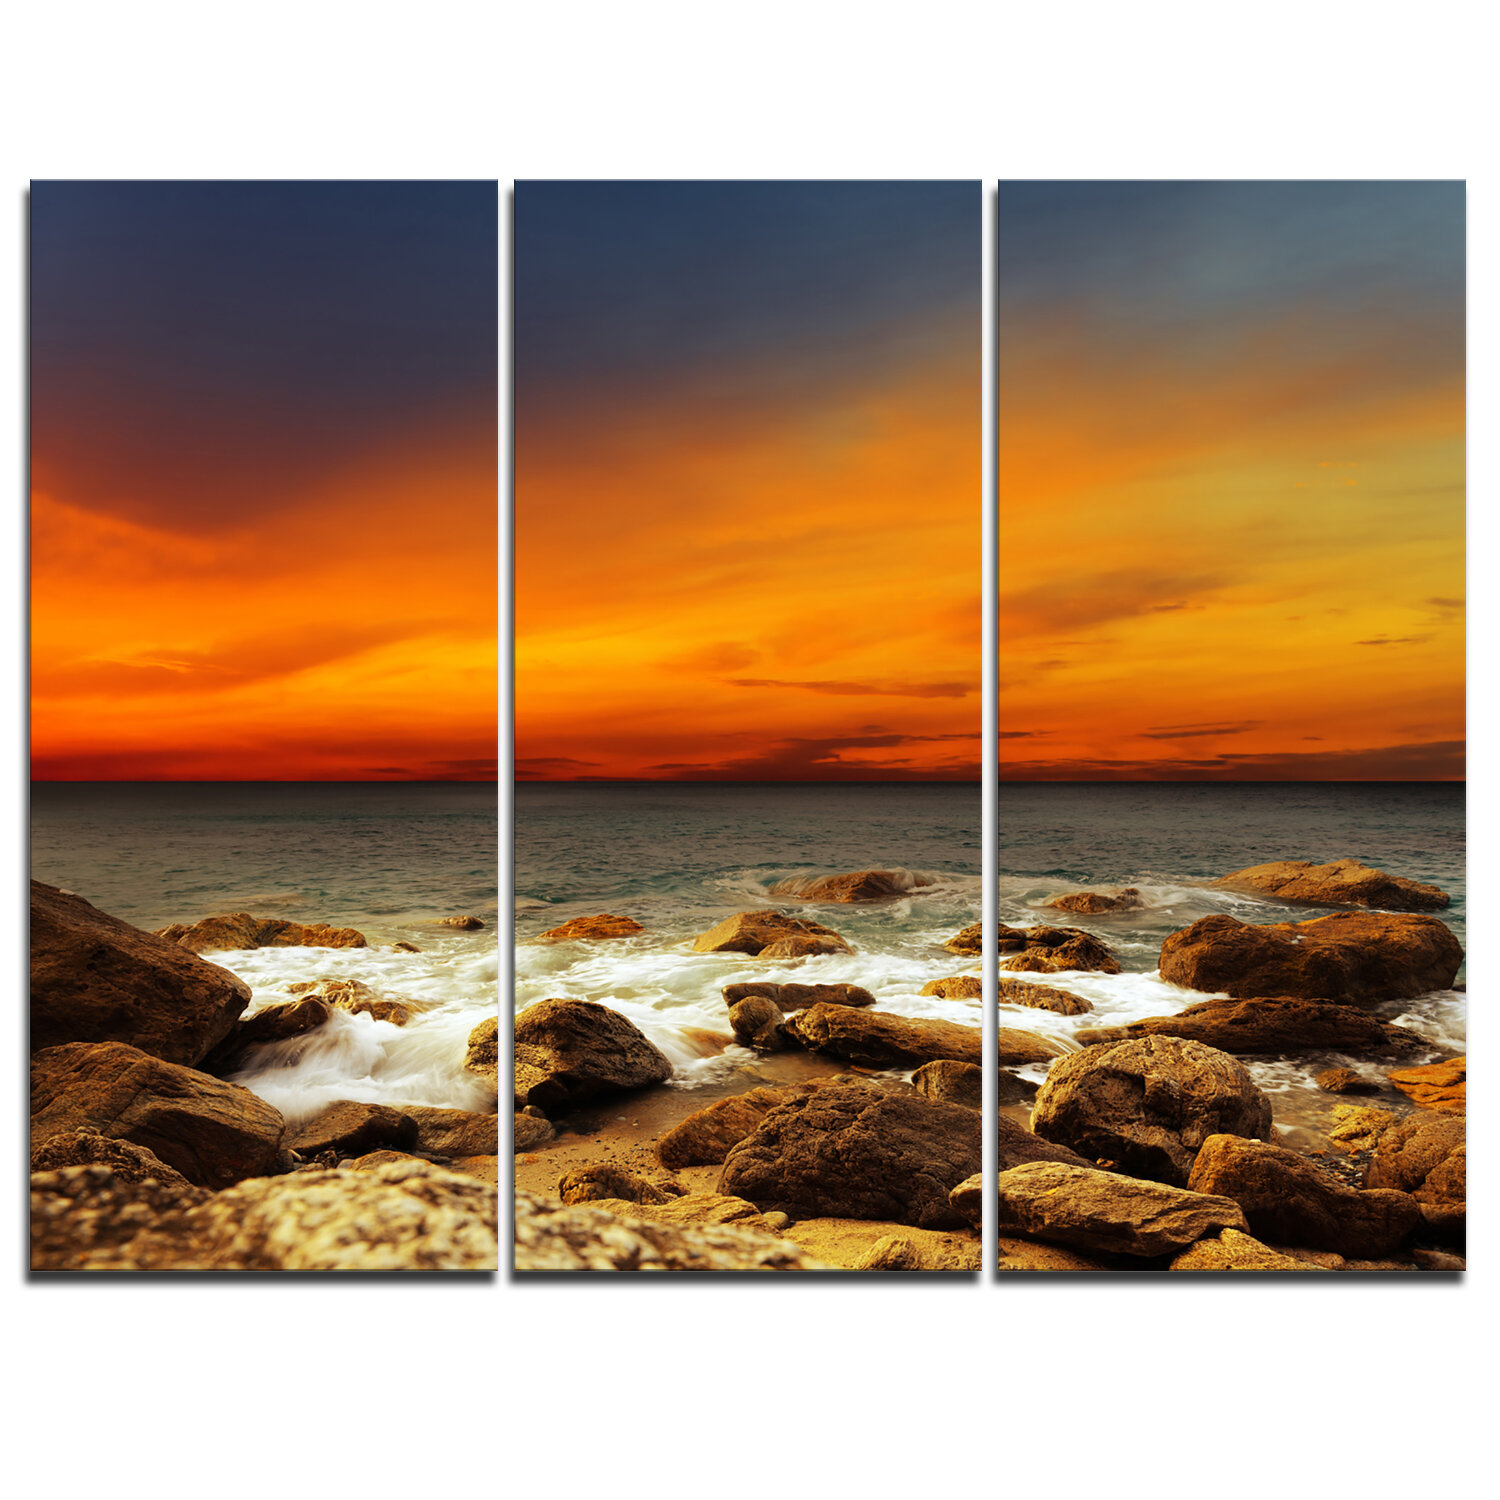 Designart Red Sky Over Rocky Seashore 3 Piece Graphic Art On Wrapped Canvas Set Wayfair